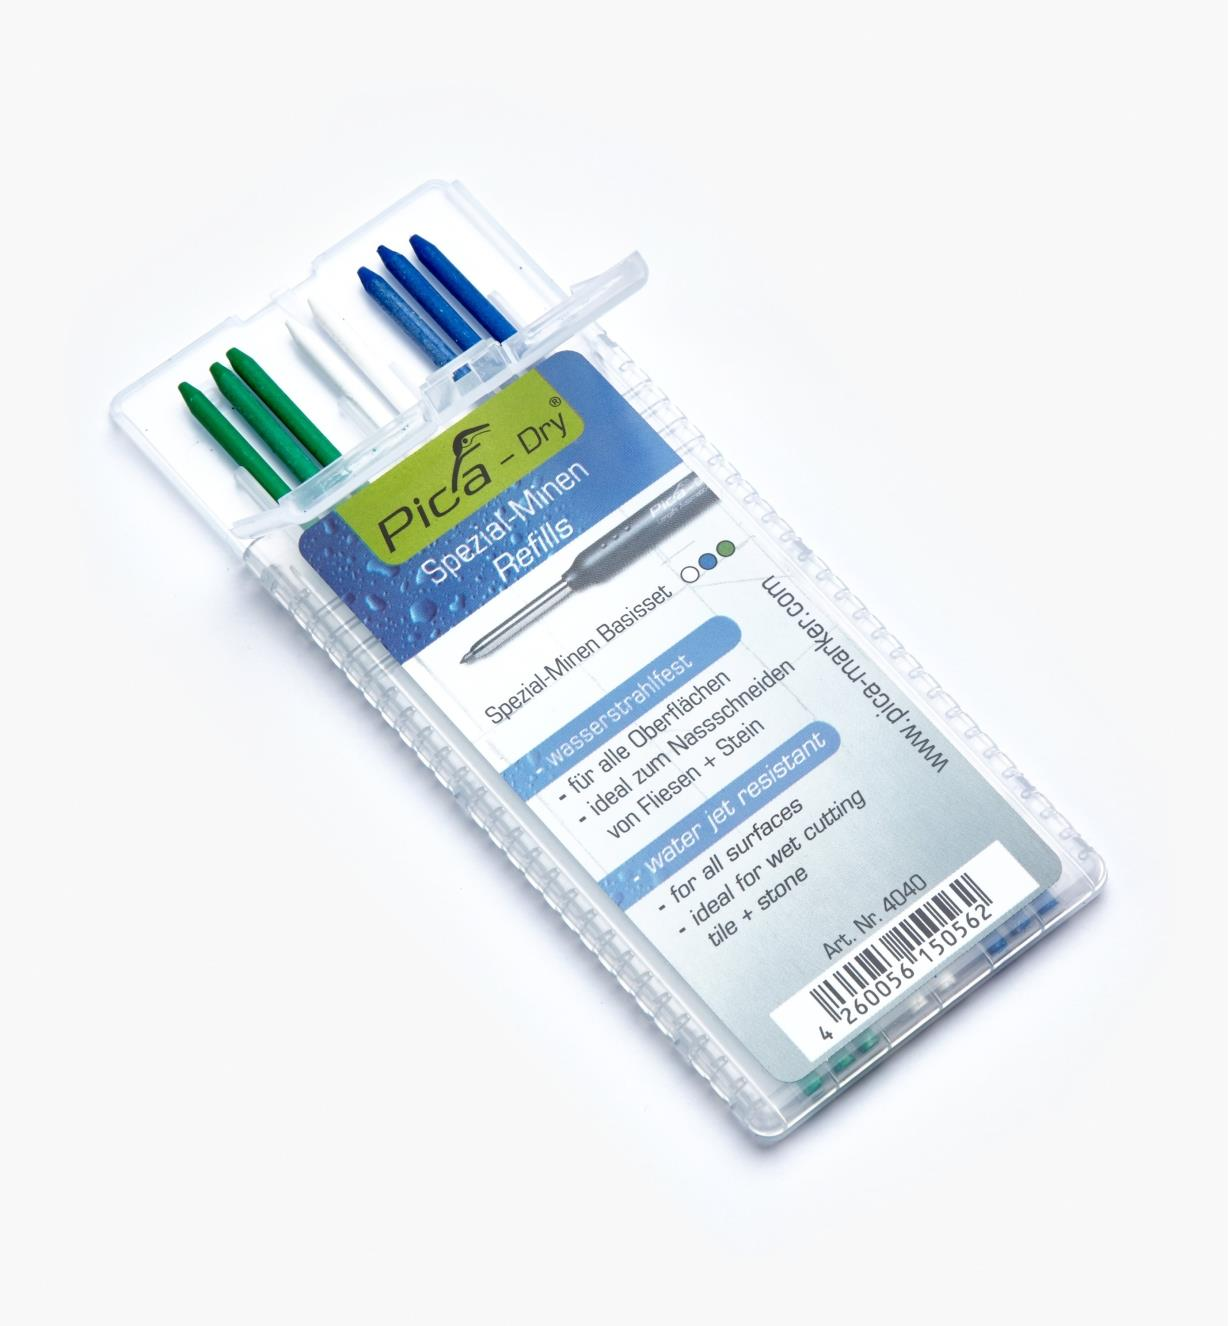 25K0425 - Set of 8 Pica-Dry Water-Resistant 2B Leads (3 Green, 2 White, 3 Blue)